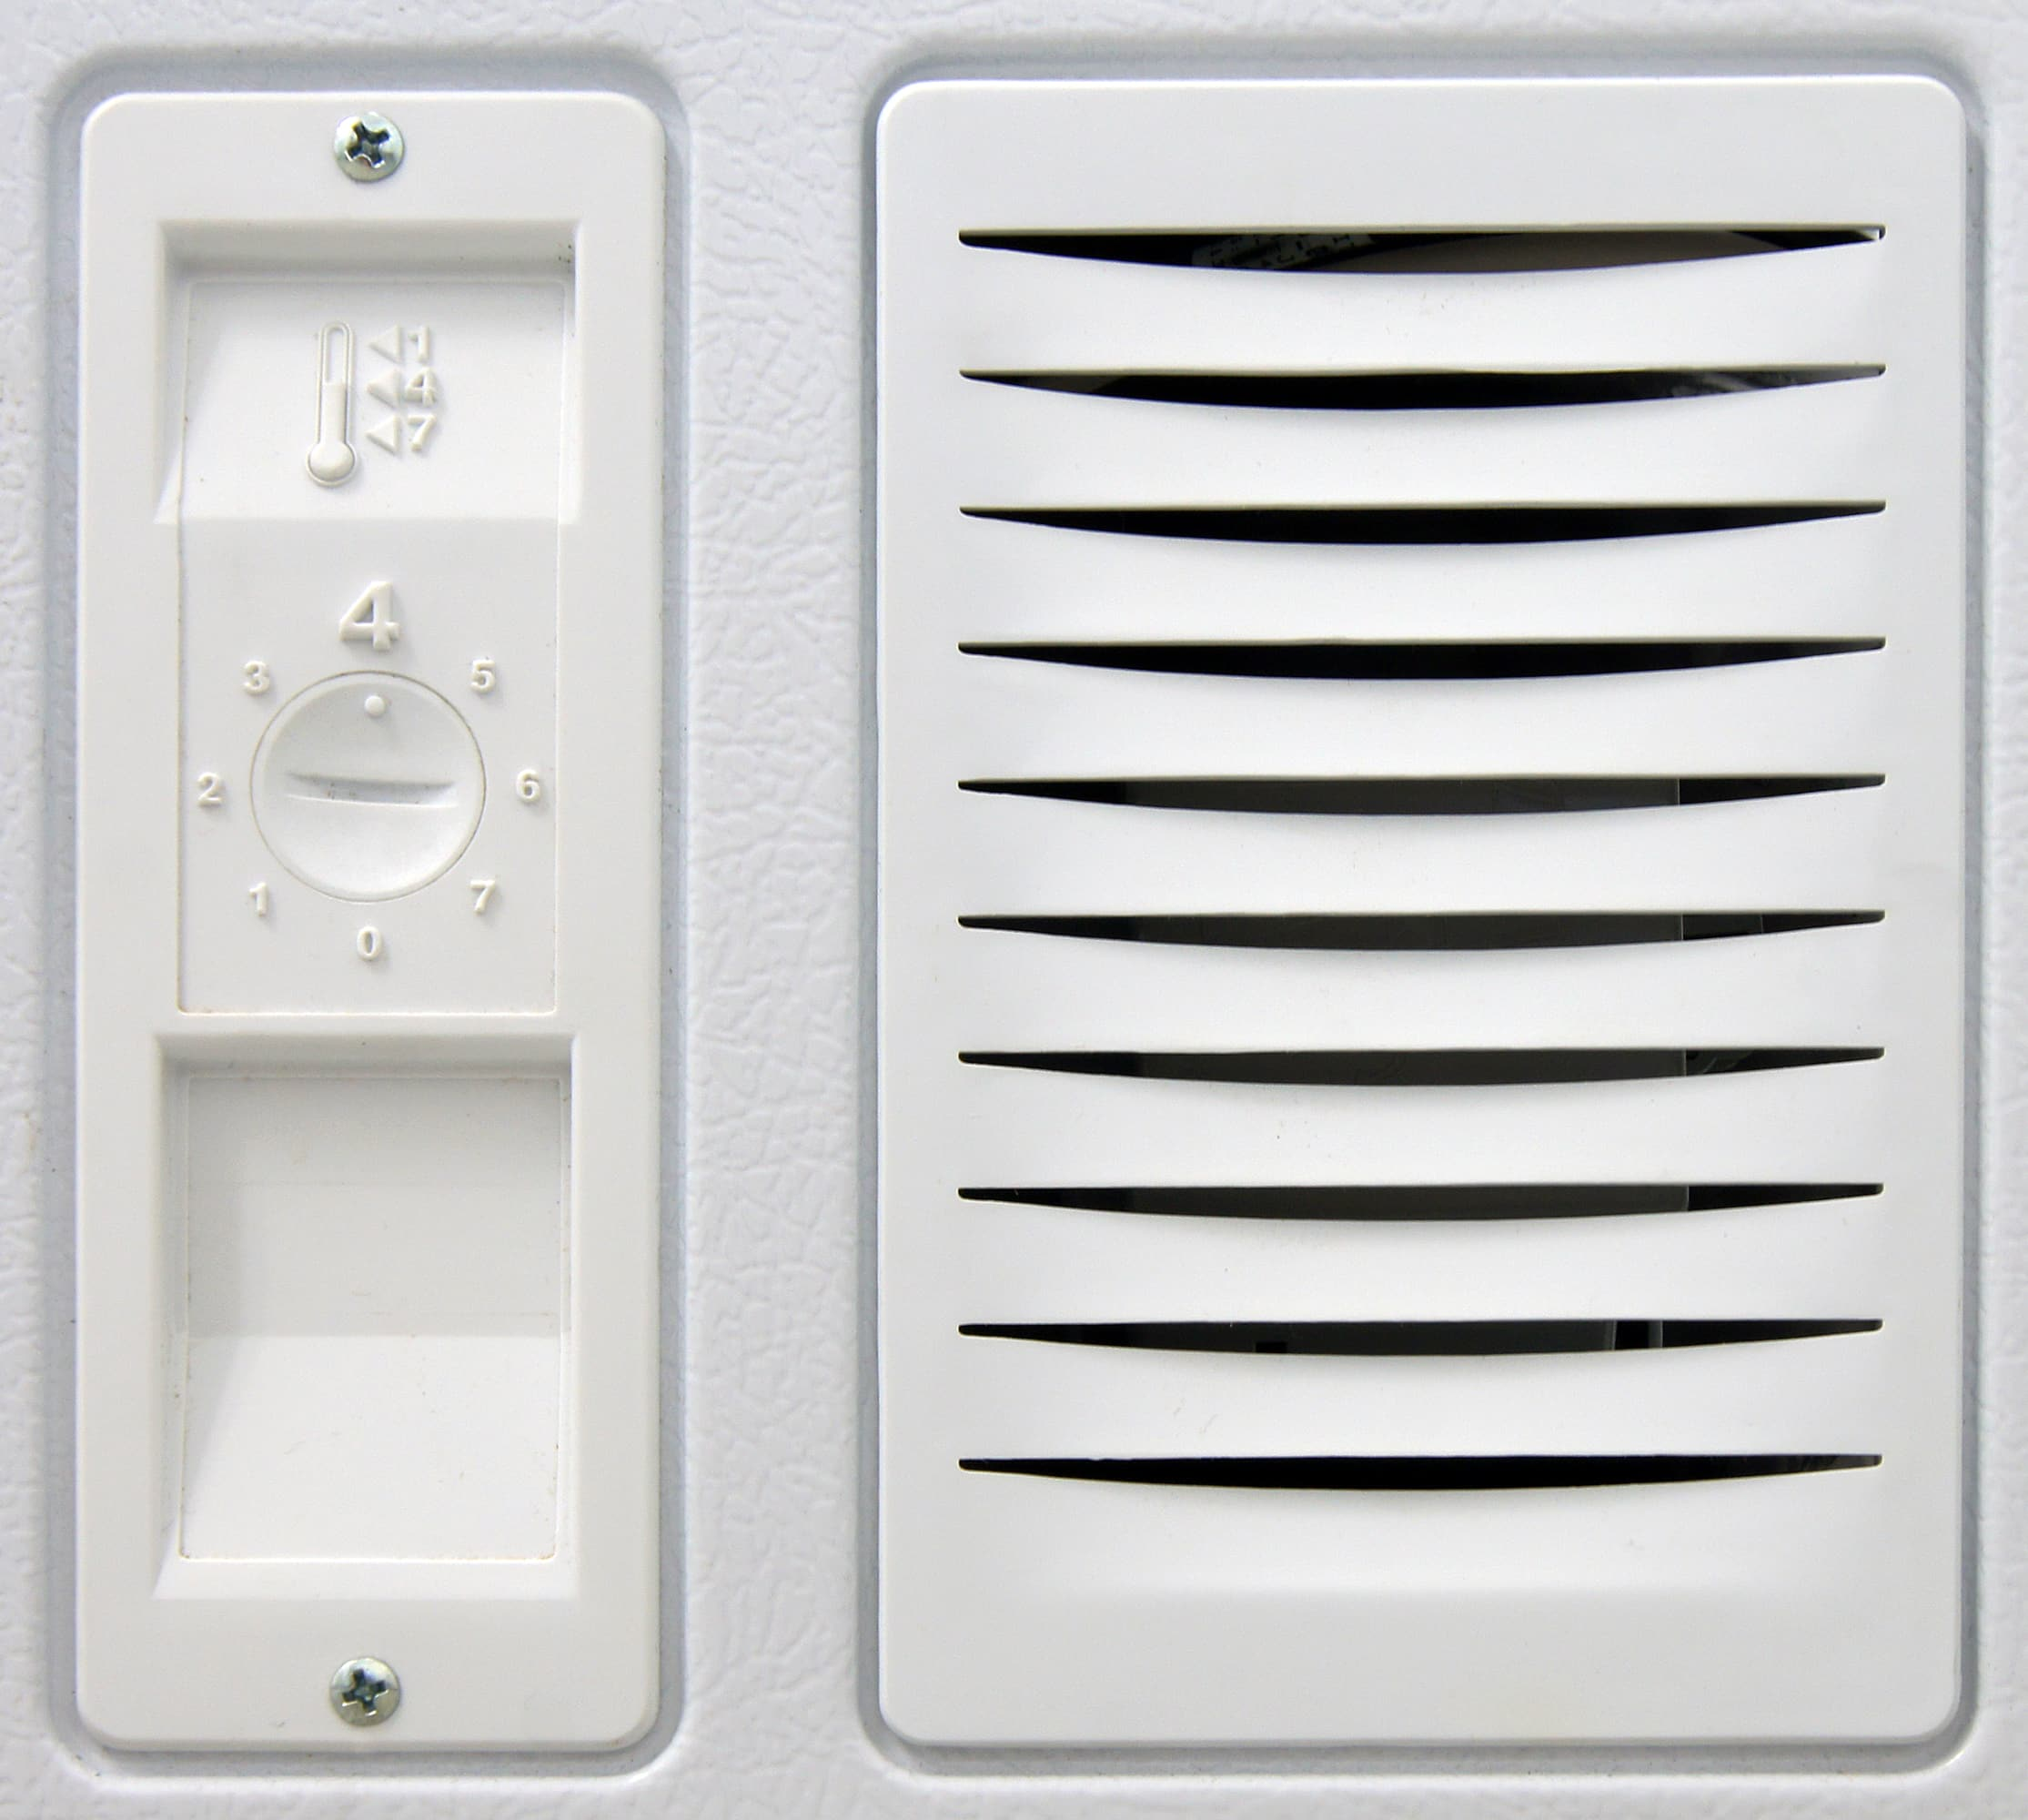 The Whirlpool EH151FXTQ's controls are quite difficult to turn—good if your freezer is in a high-traffic area. You'll need something flat like a coin to insert into the horizontal divot.